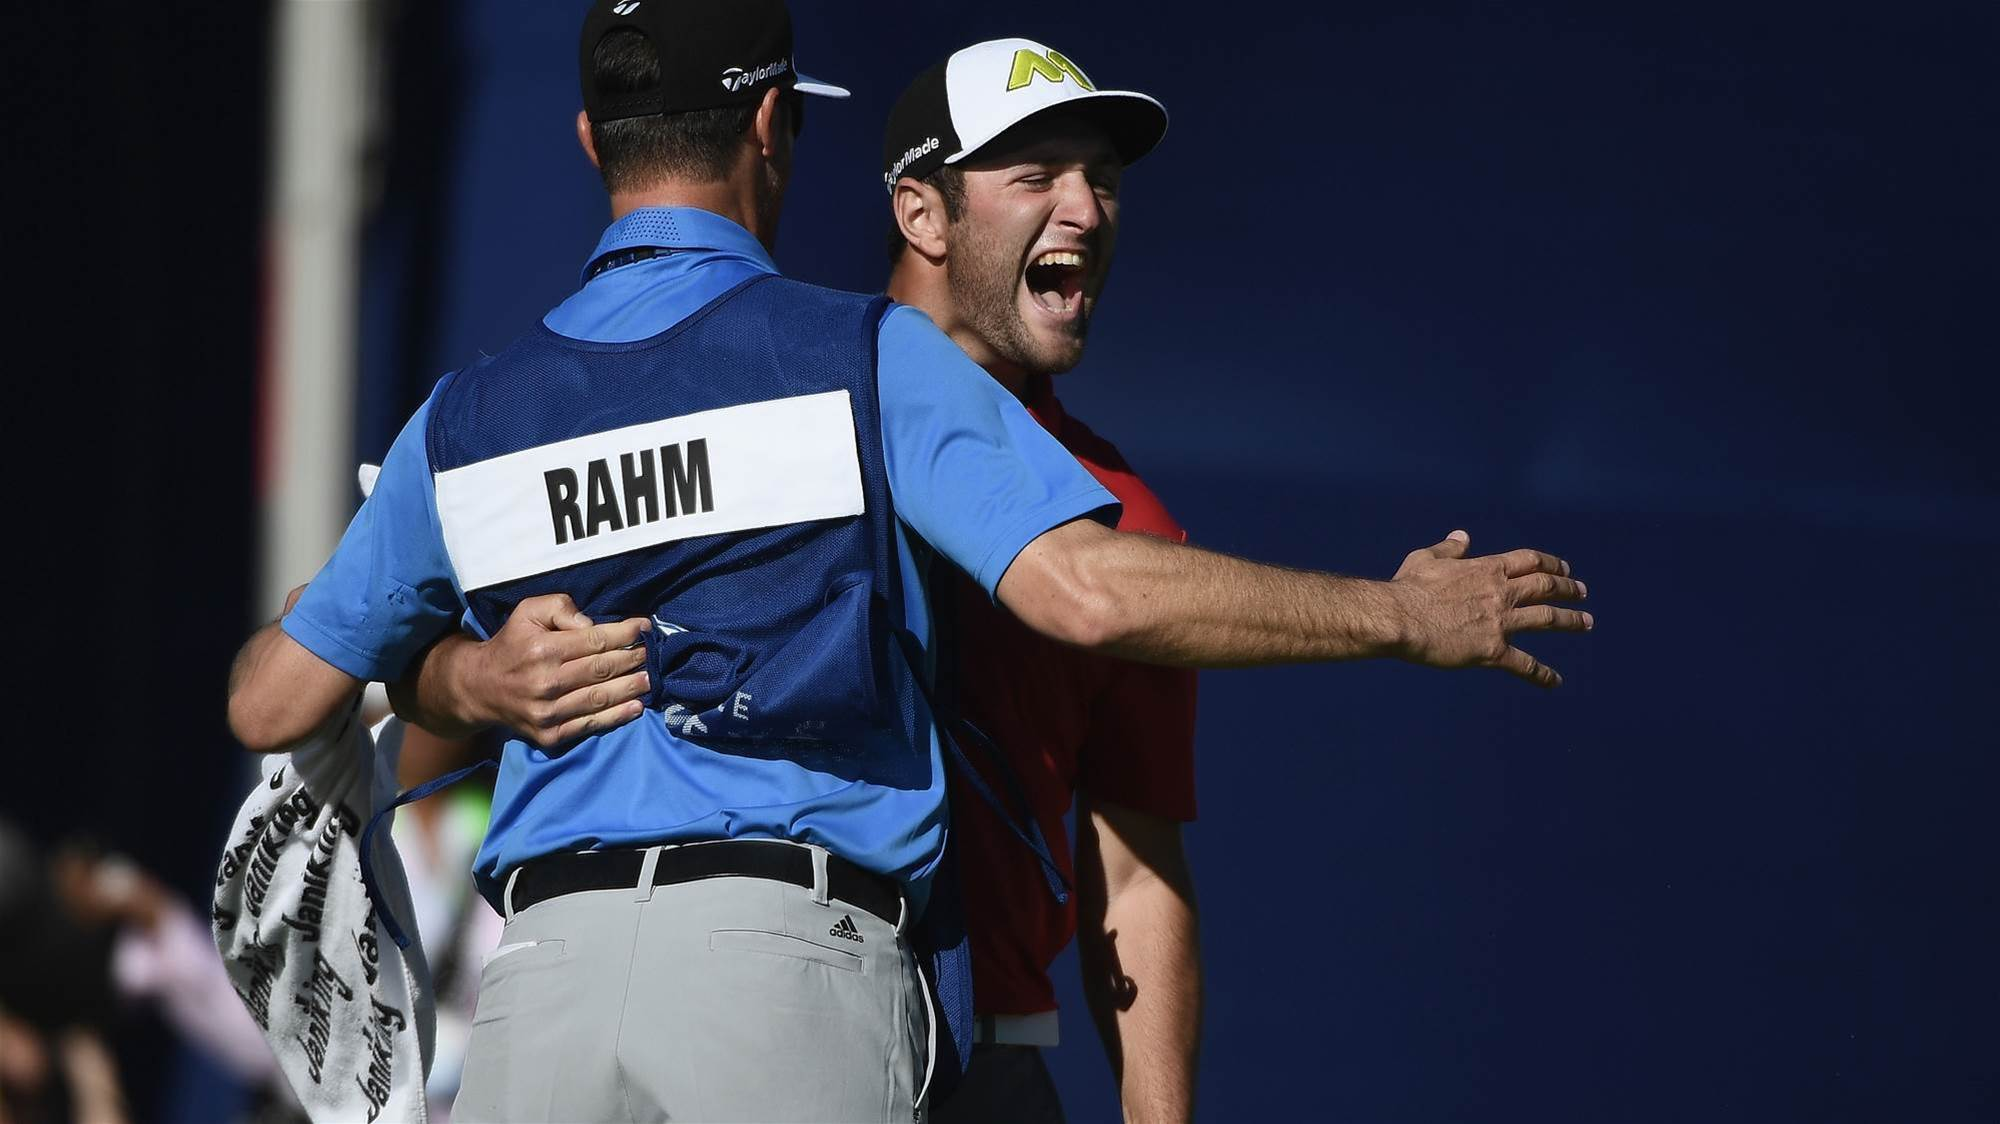 PGA TOUR: Inspired by Seve, Rahm lives up to the hype